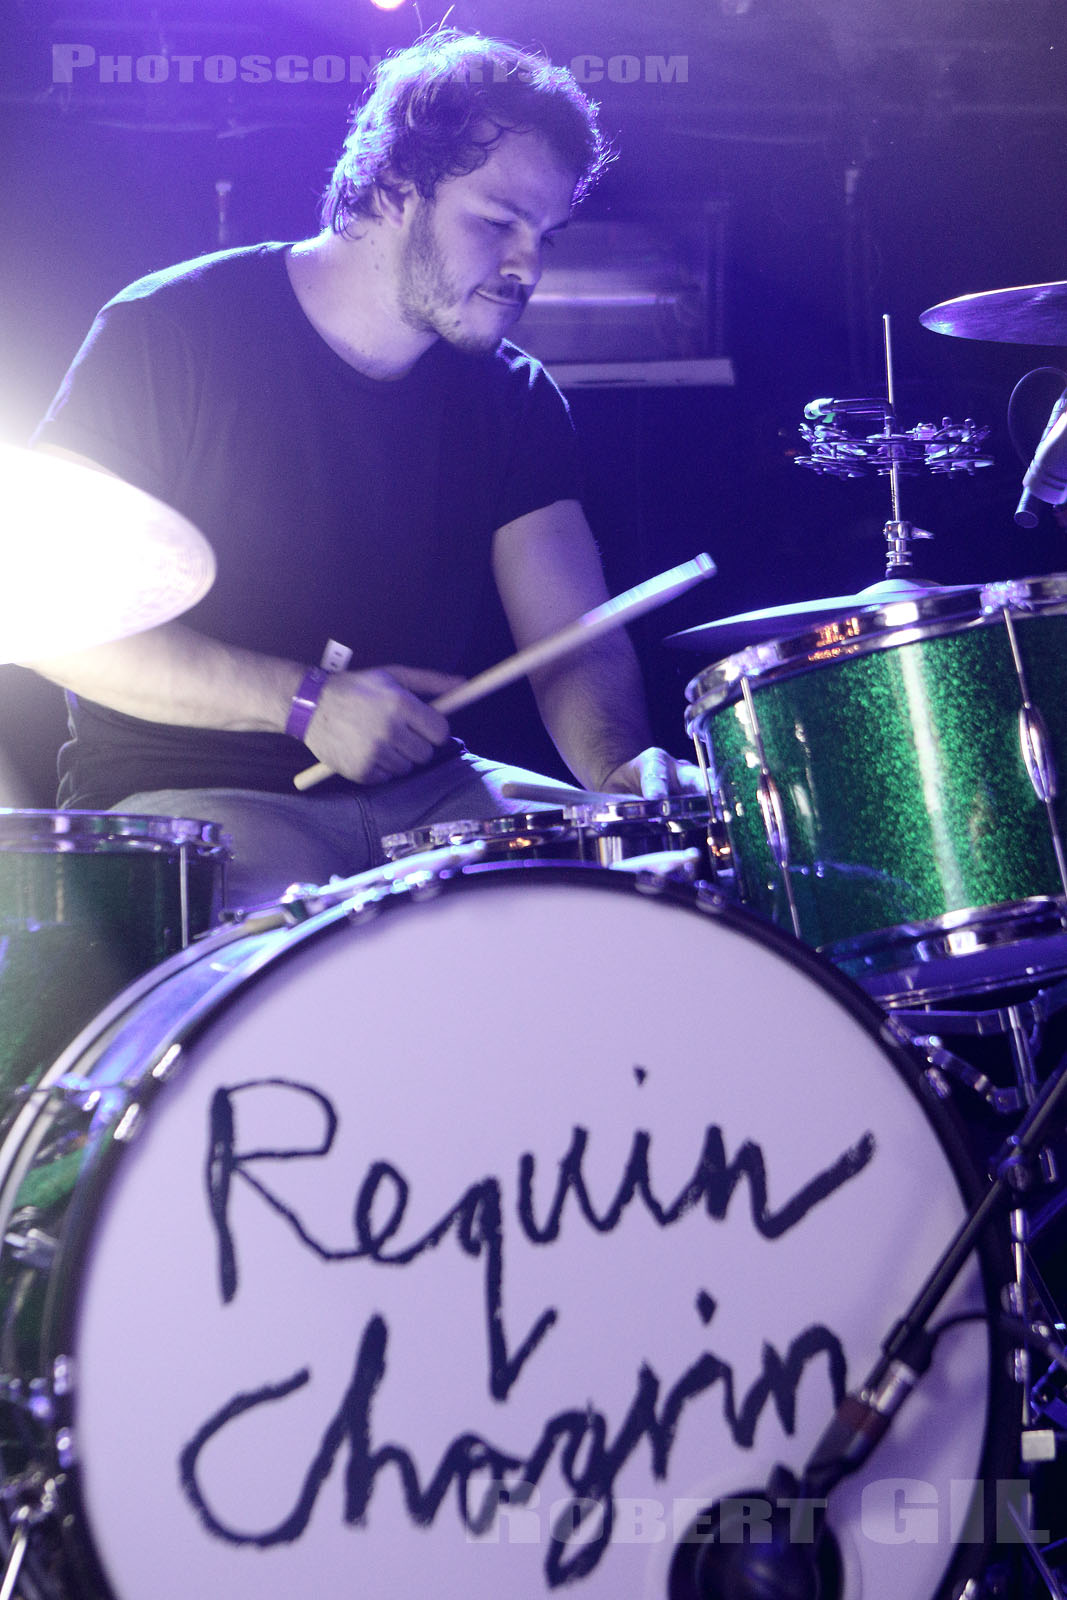 REQUIN CHAGRIN - 2019-04-04 - PARIS - Trabendo